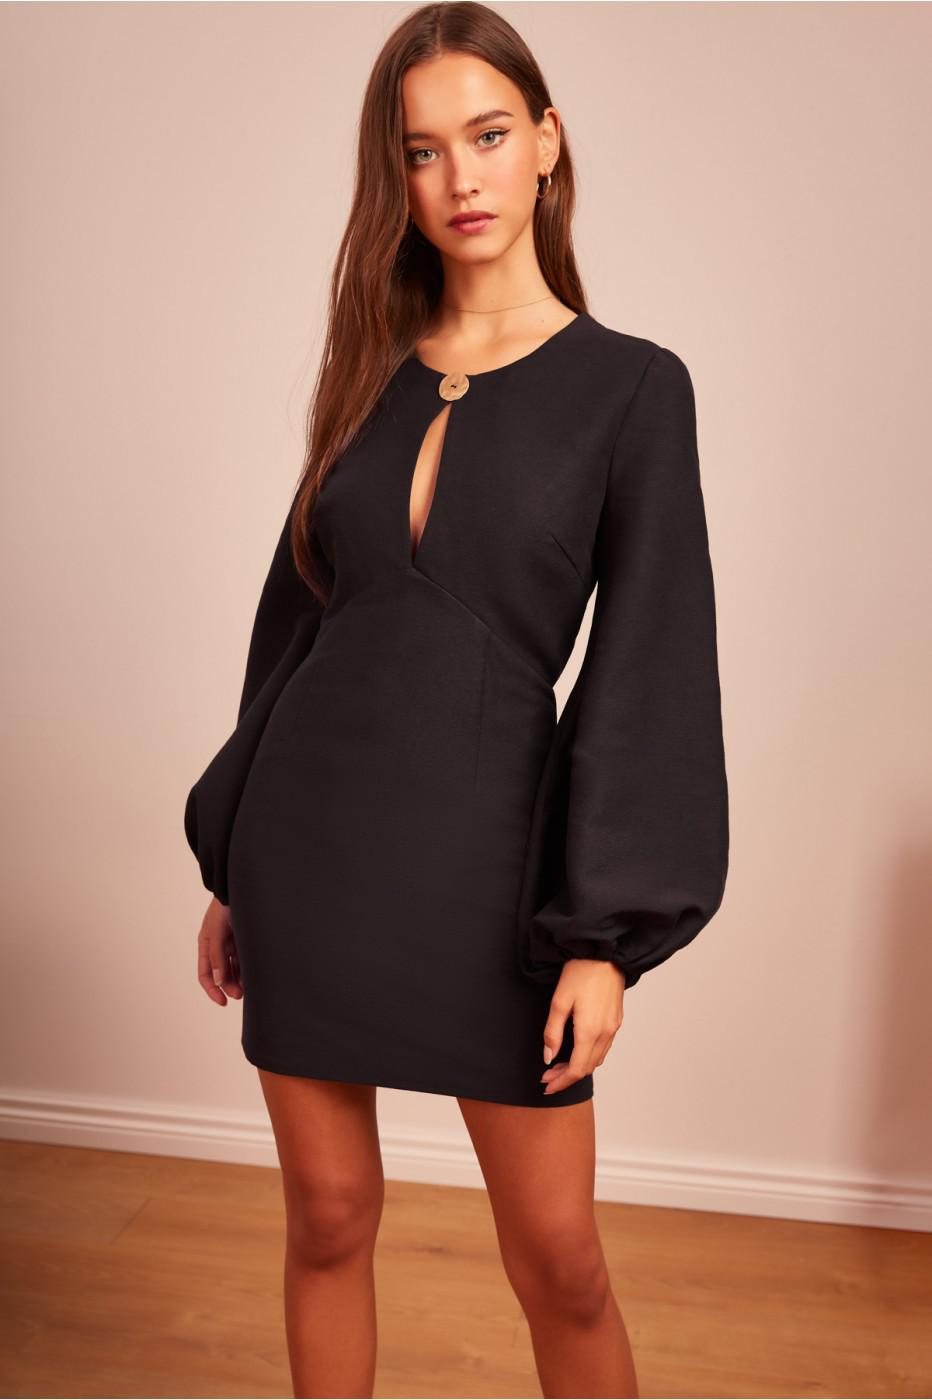 de006a5c29dd Finders Keepers Pompeii Long Sleeve Dress in Black - Lyst